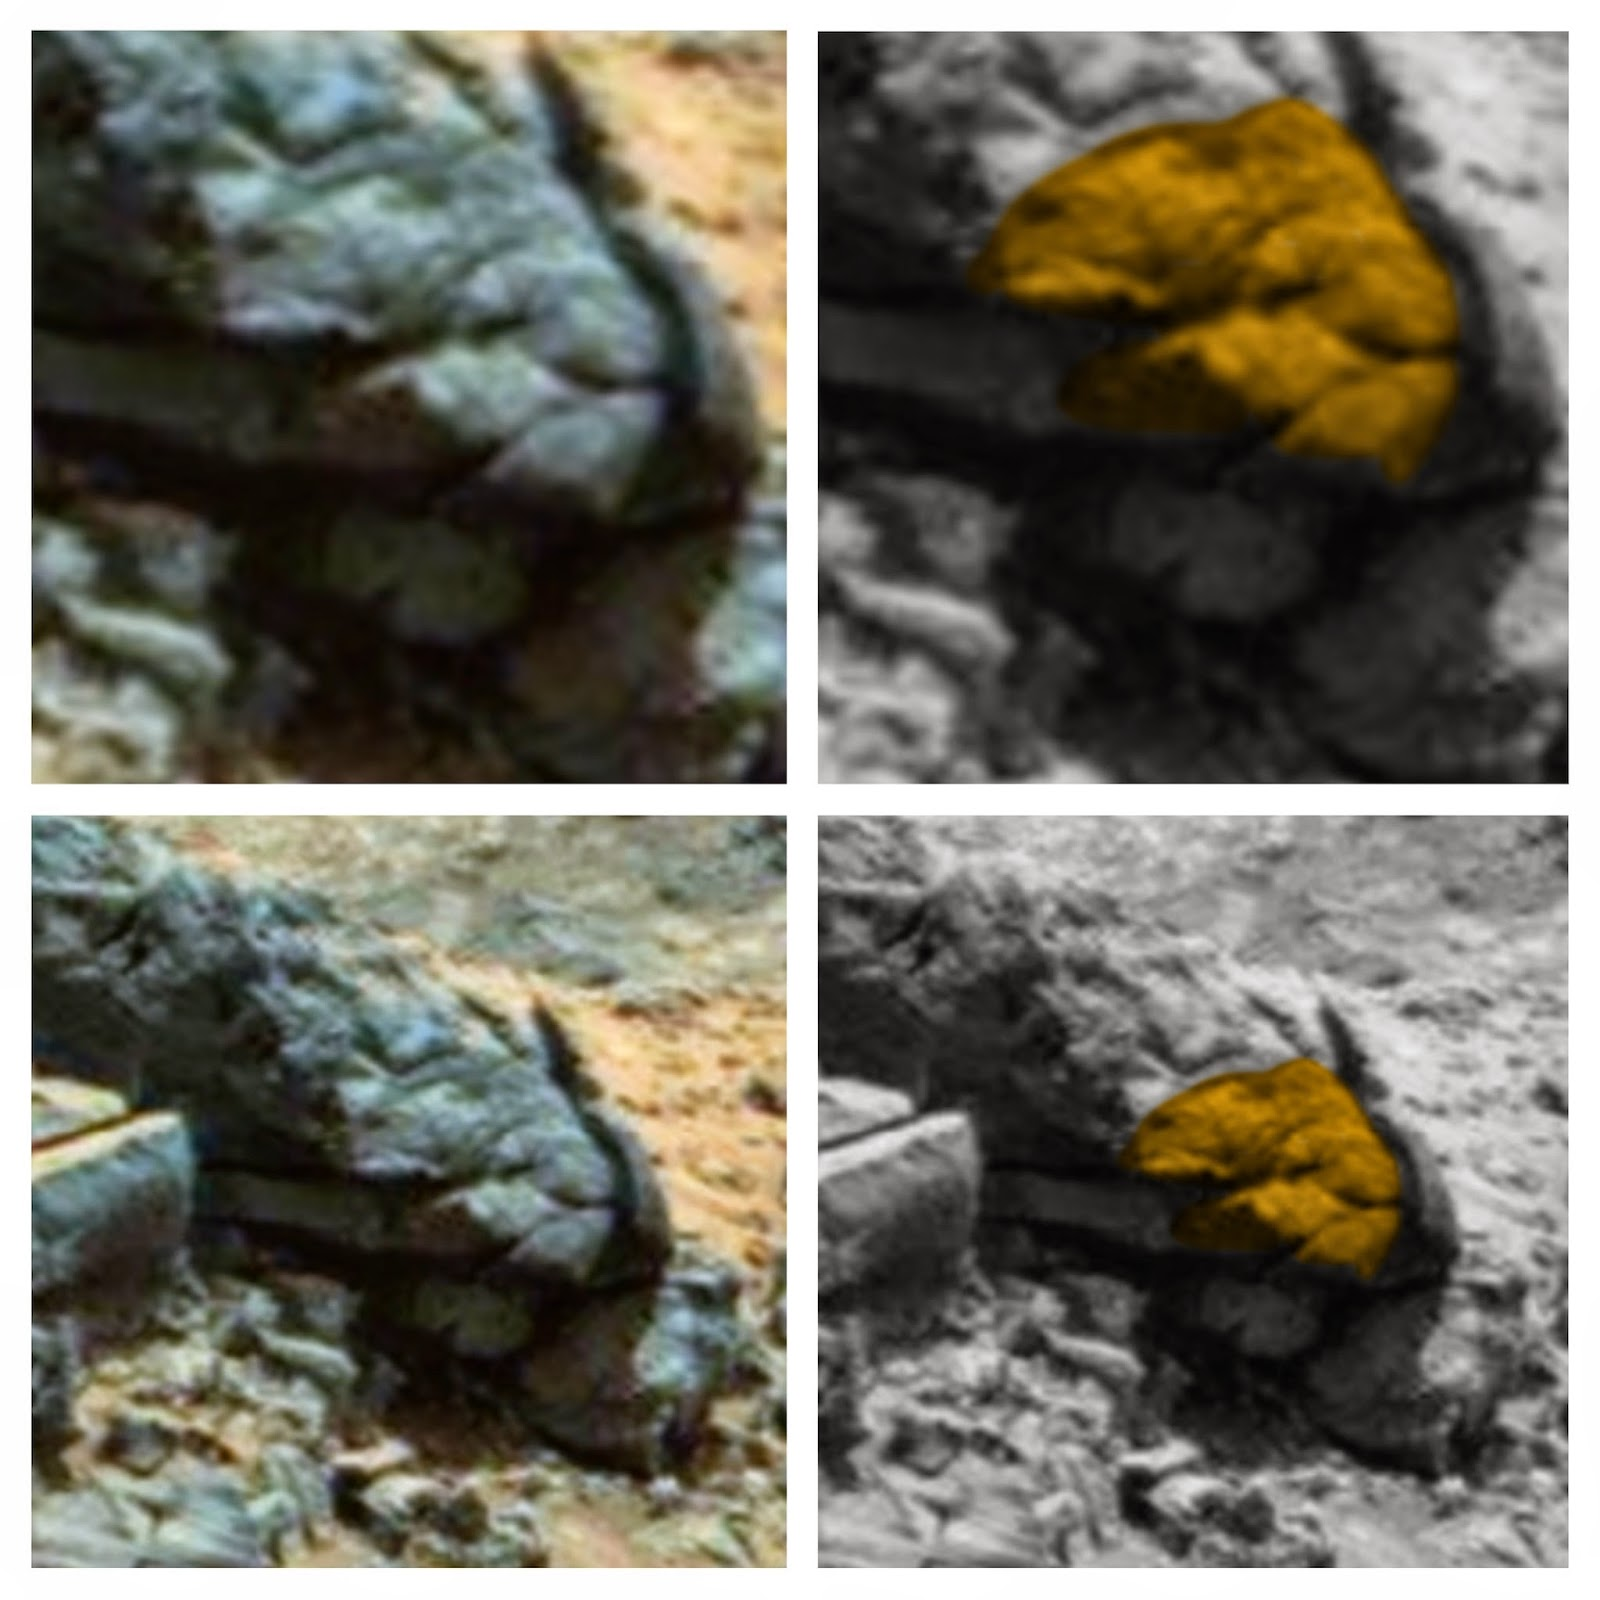 Ufo sightings daily ancient aliens on mars carved